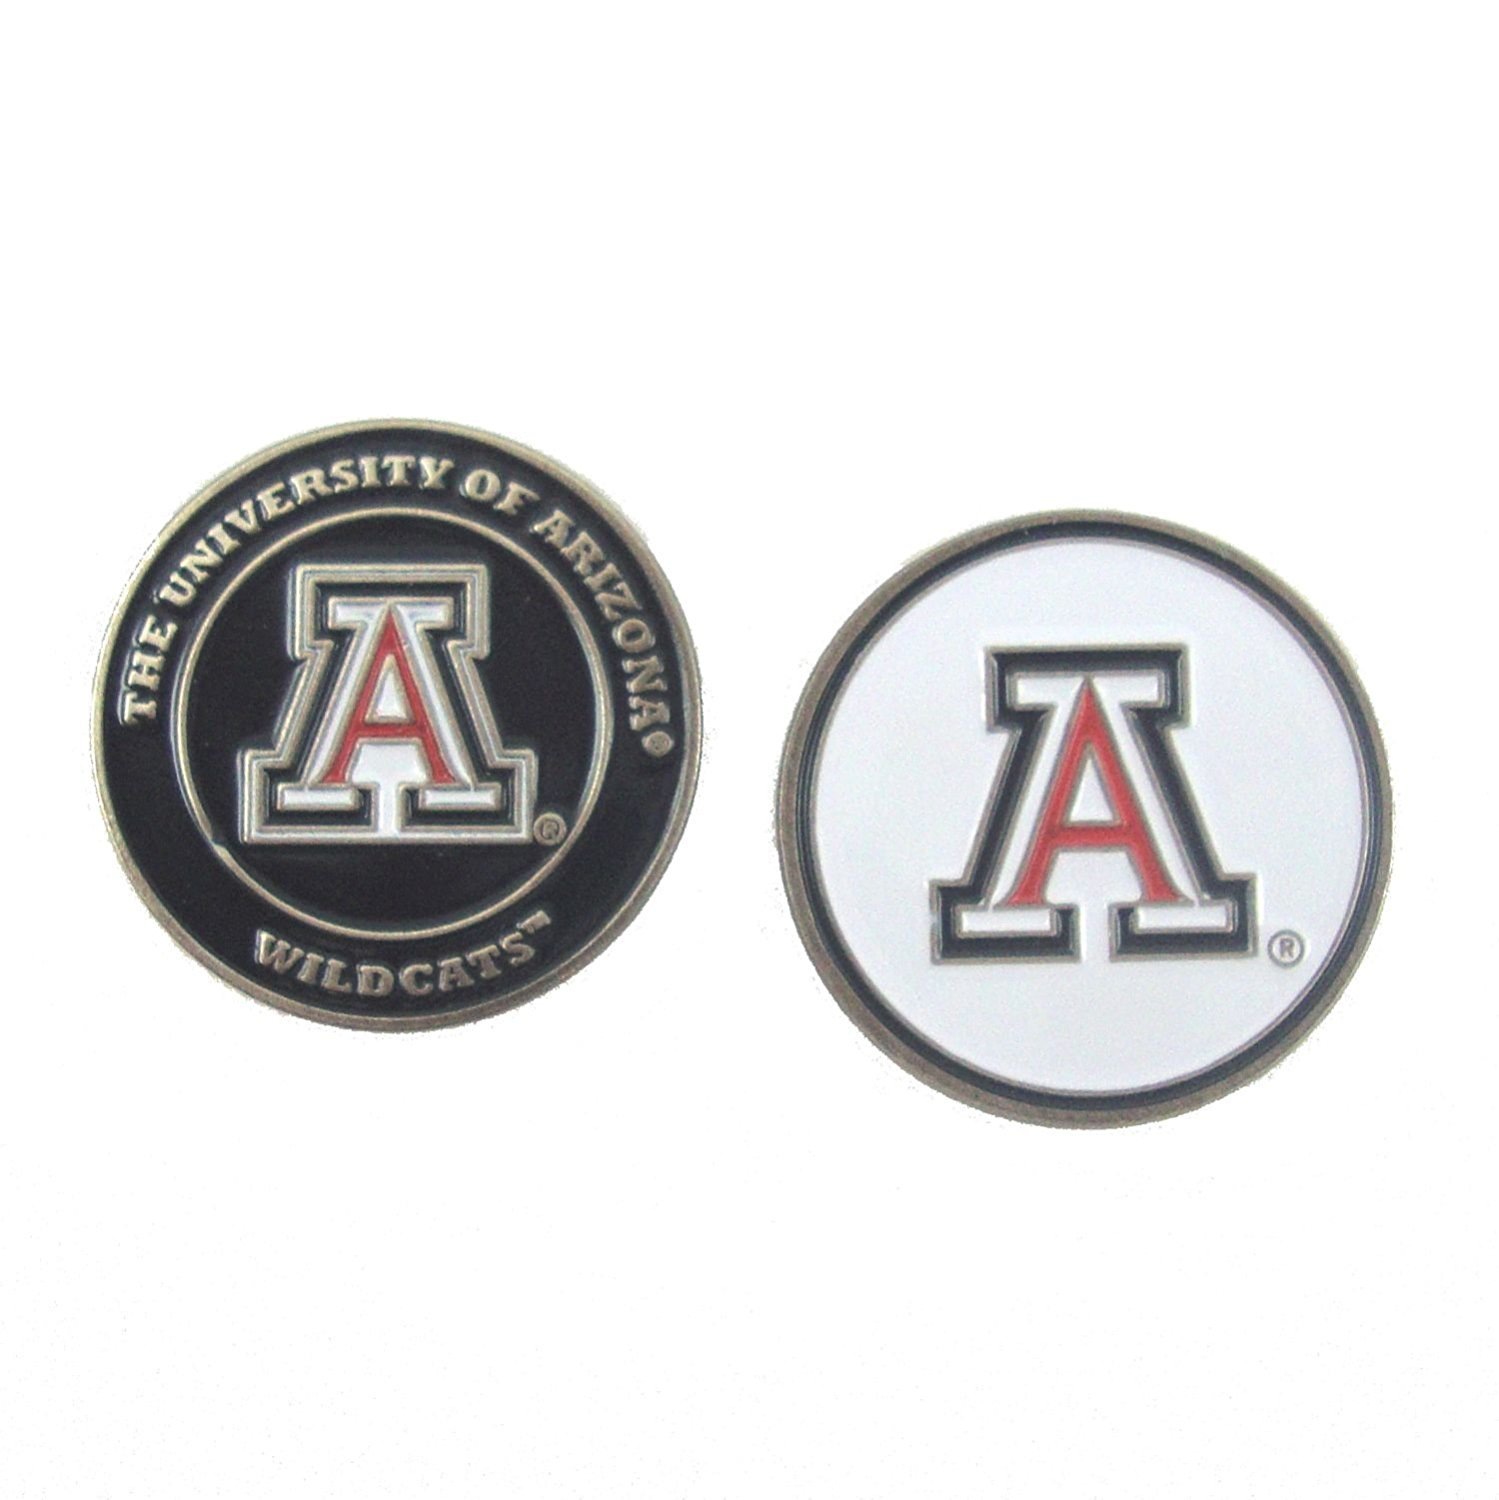 Arizona Wildcats Double-Sided UA Golf Ball Marker, University of Arizona Golf Ball Marker By Waggle Pro Shop,USA